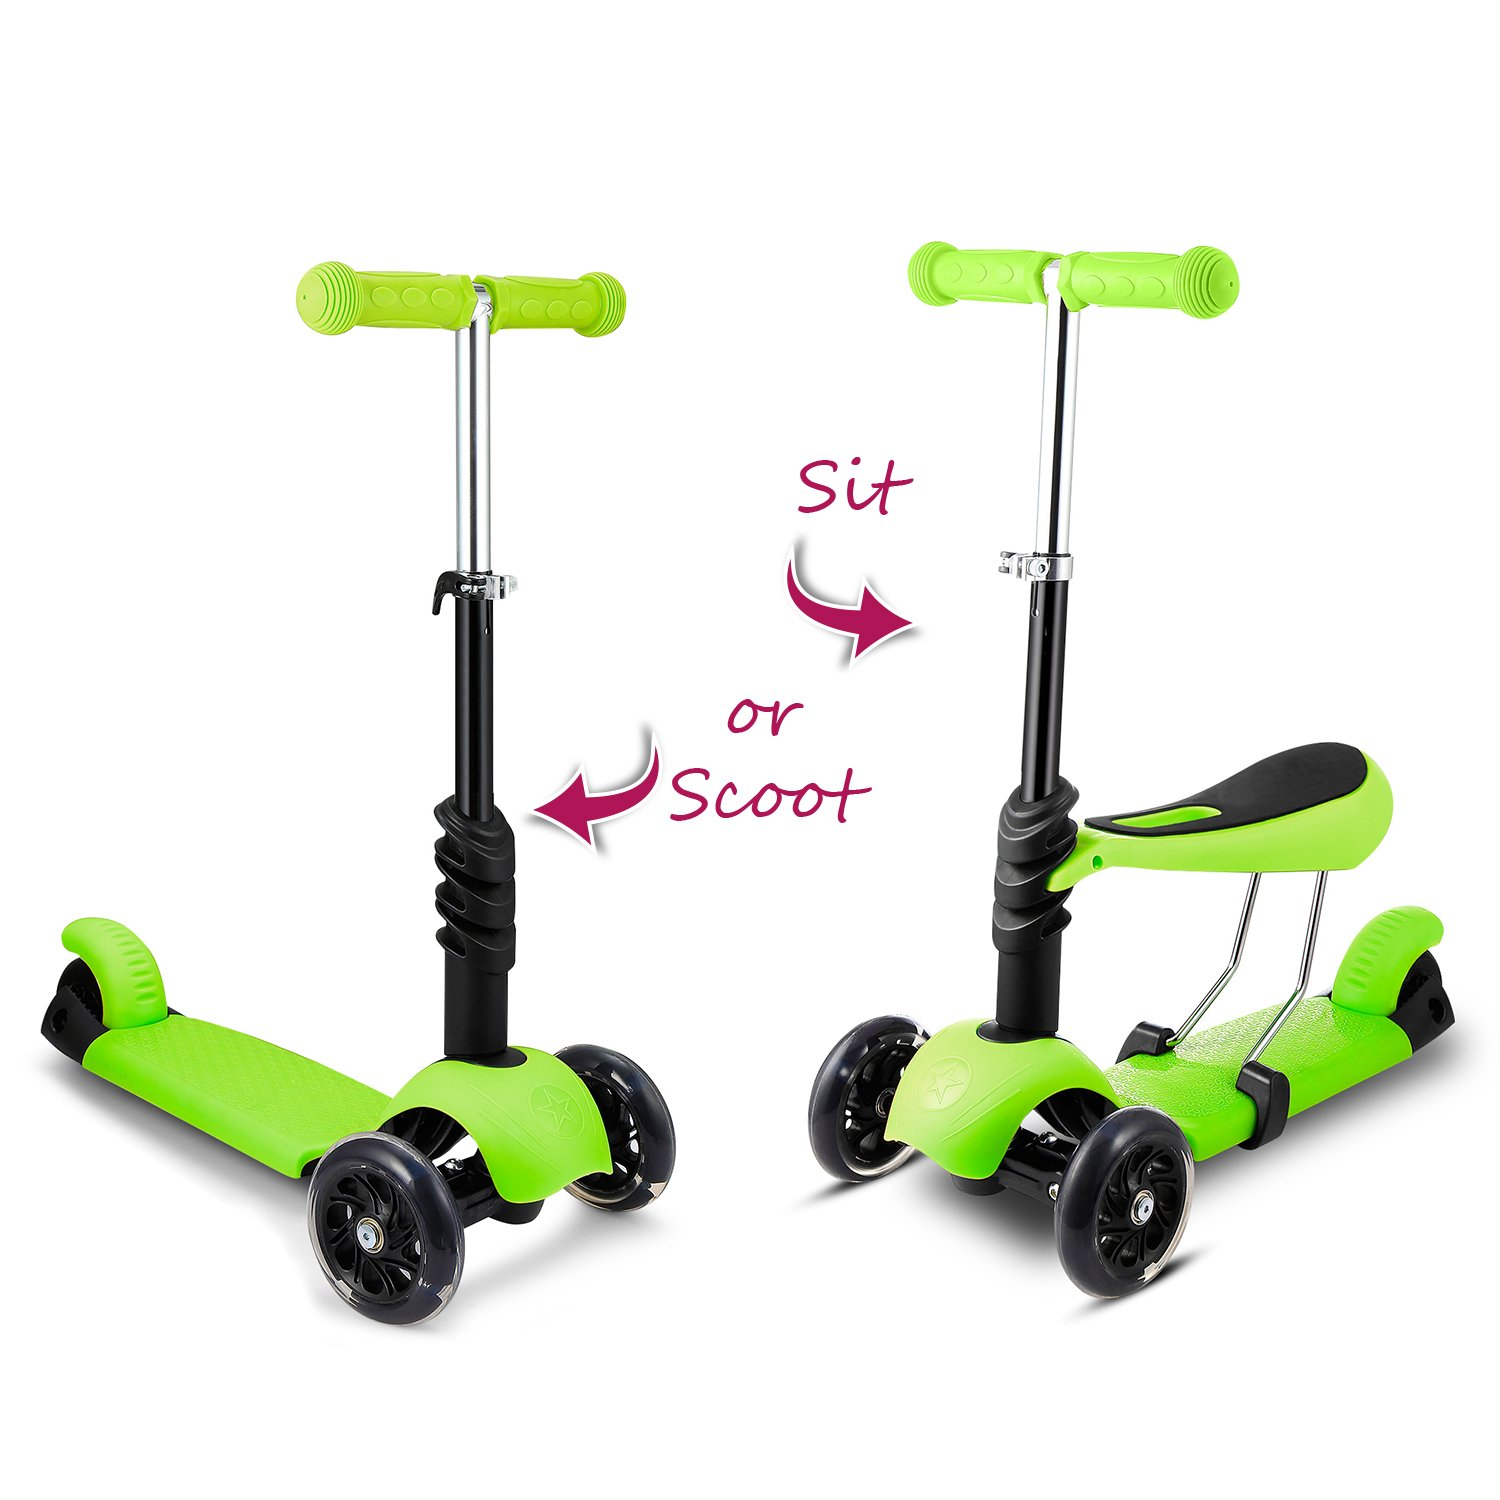 Hikole Scooter with Seat for Kids Toddlers | 3-in-1 Foldable Portable Adjustable 3 Wheels Mini Scooter with LED Light up Wheels for Children Boys Girls 2 Years Old and Up, Supports 110lbs by Hikole